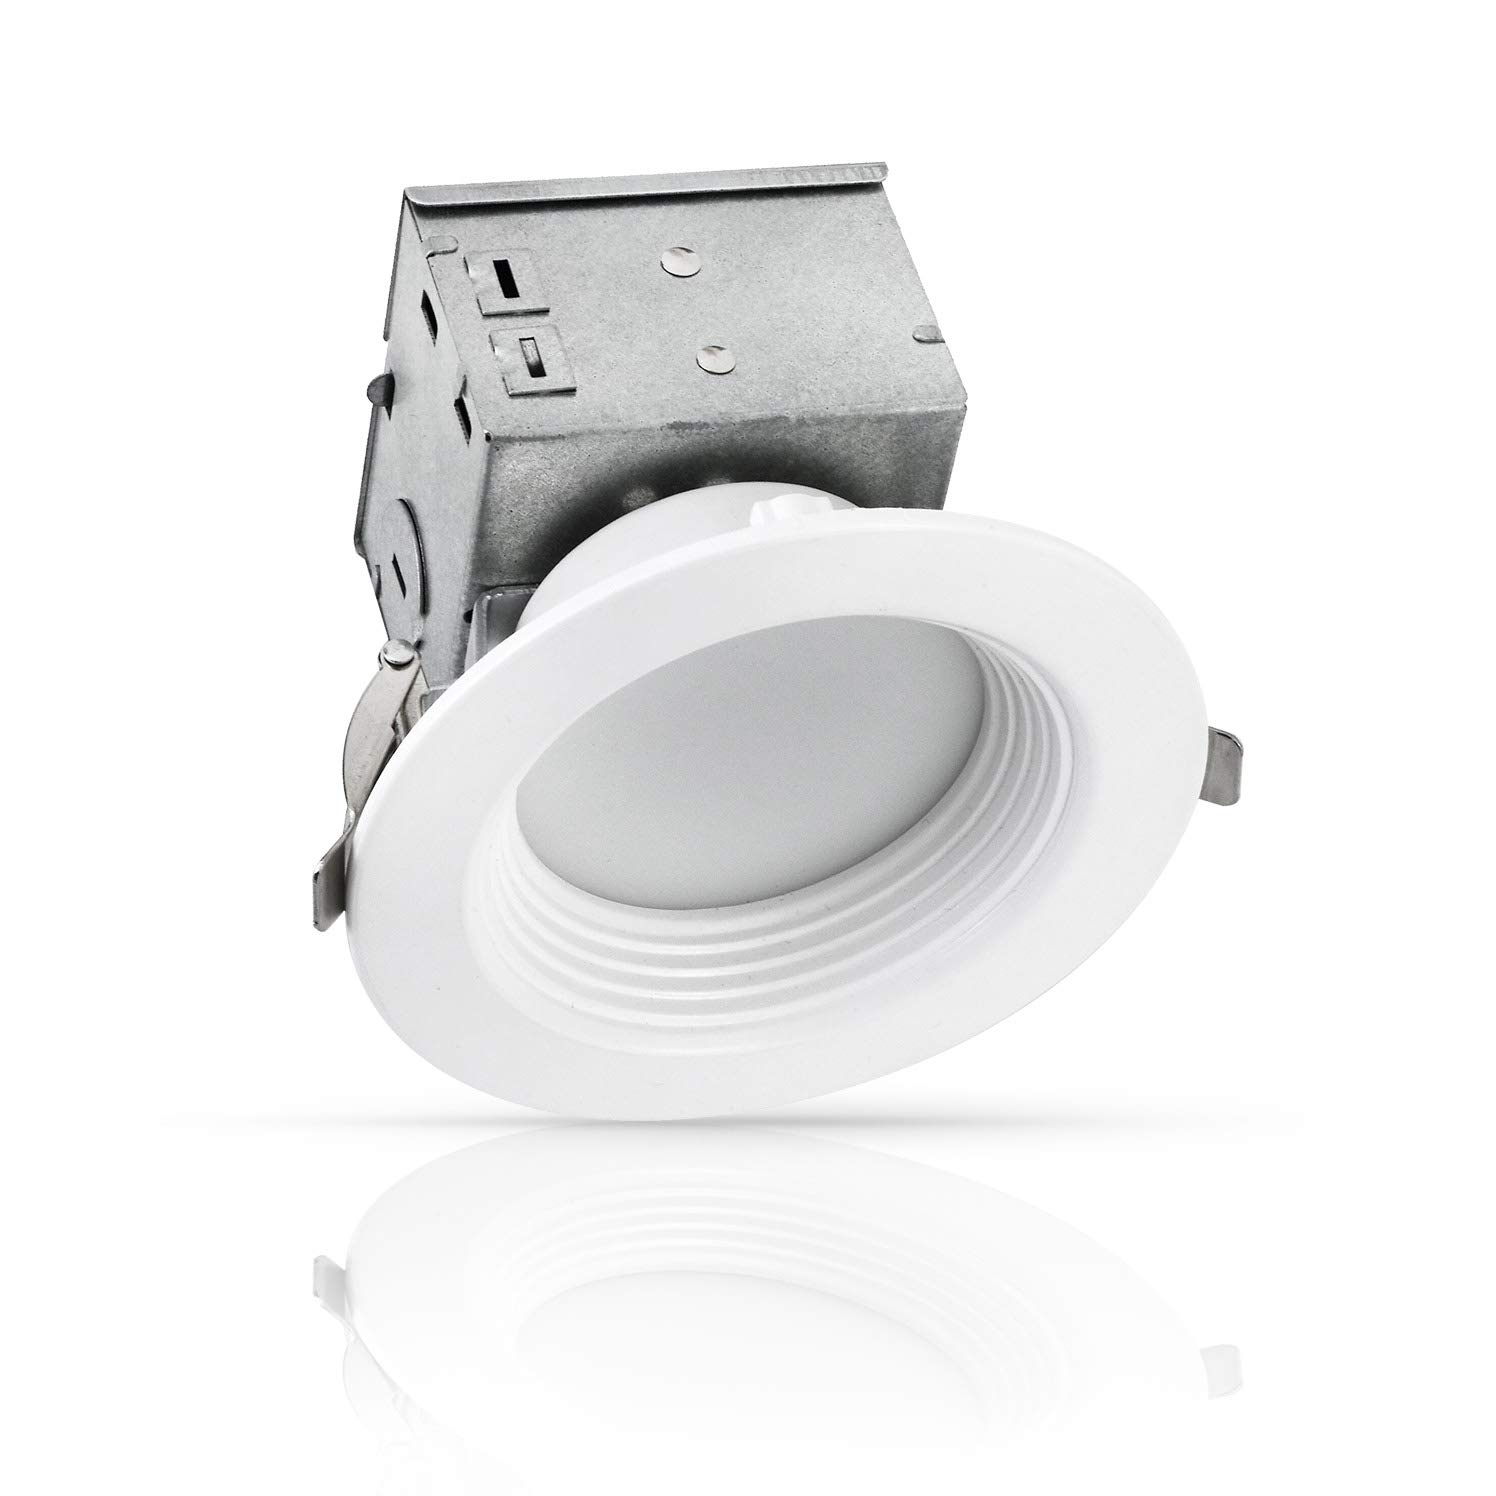 LUXTER 4 inch LED Ceiling Recessed Downlight With Junction Box, LED Canless Downlight, Baffle Trim, Dimmable, IC Rated, 10W(75Watt Repl) 5000K 750Lm Wet Location ETL and Energy Star Listed